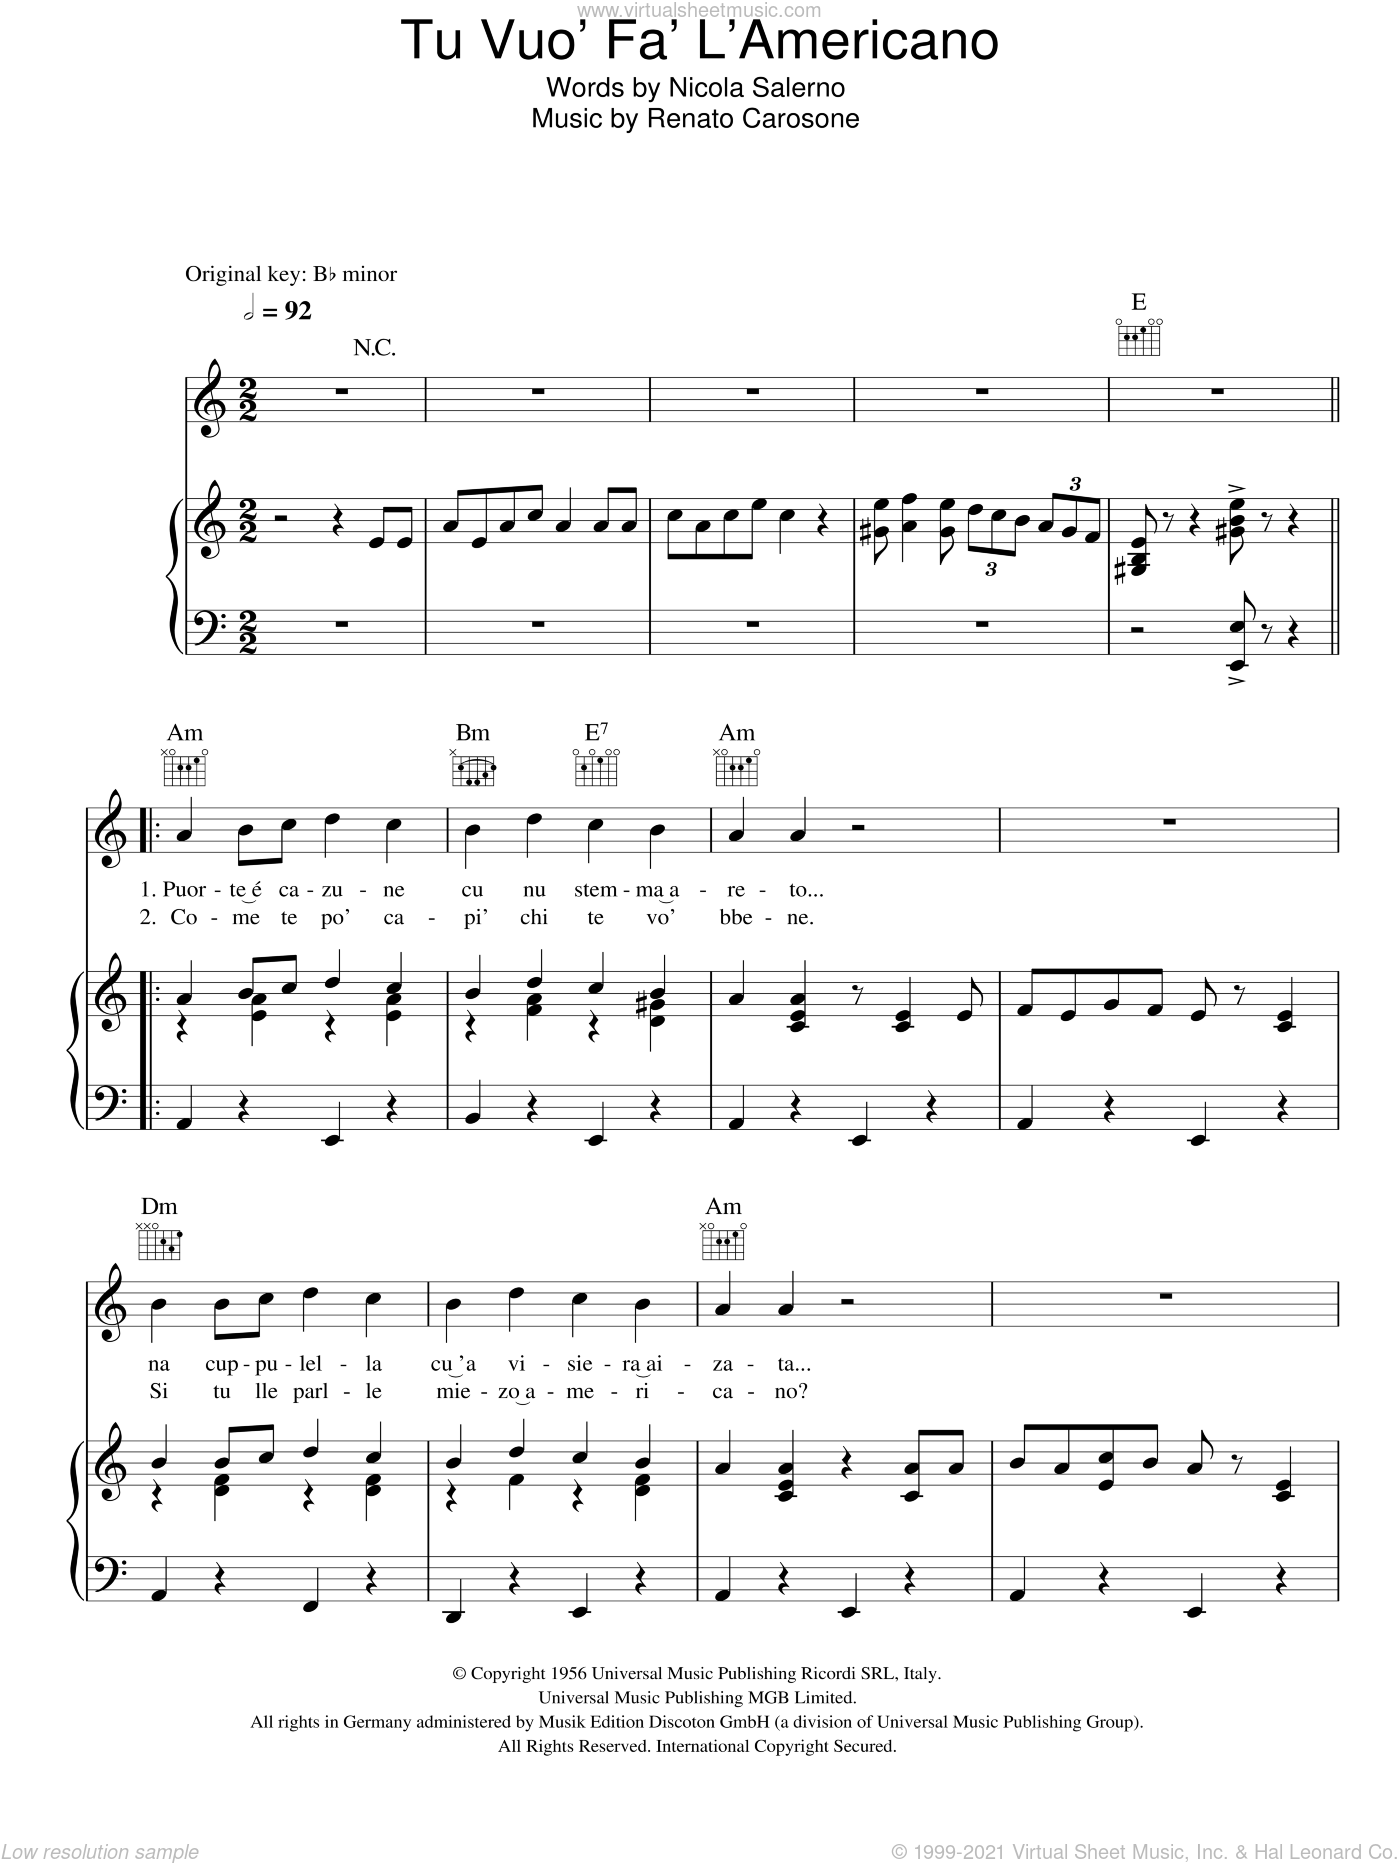 Tu Vuo Fa L'Americano sheet music for voice, piano or guitar by Nicola Salerno and Renato Carosone. Score Image Preview.